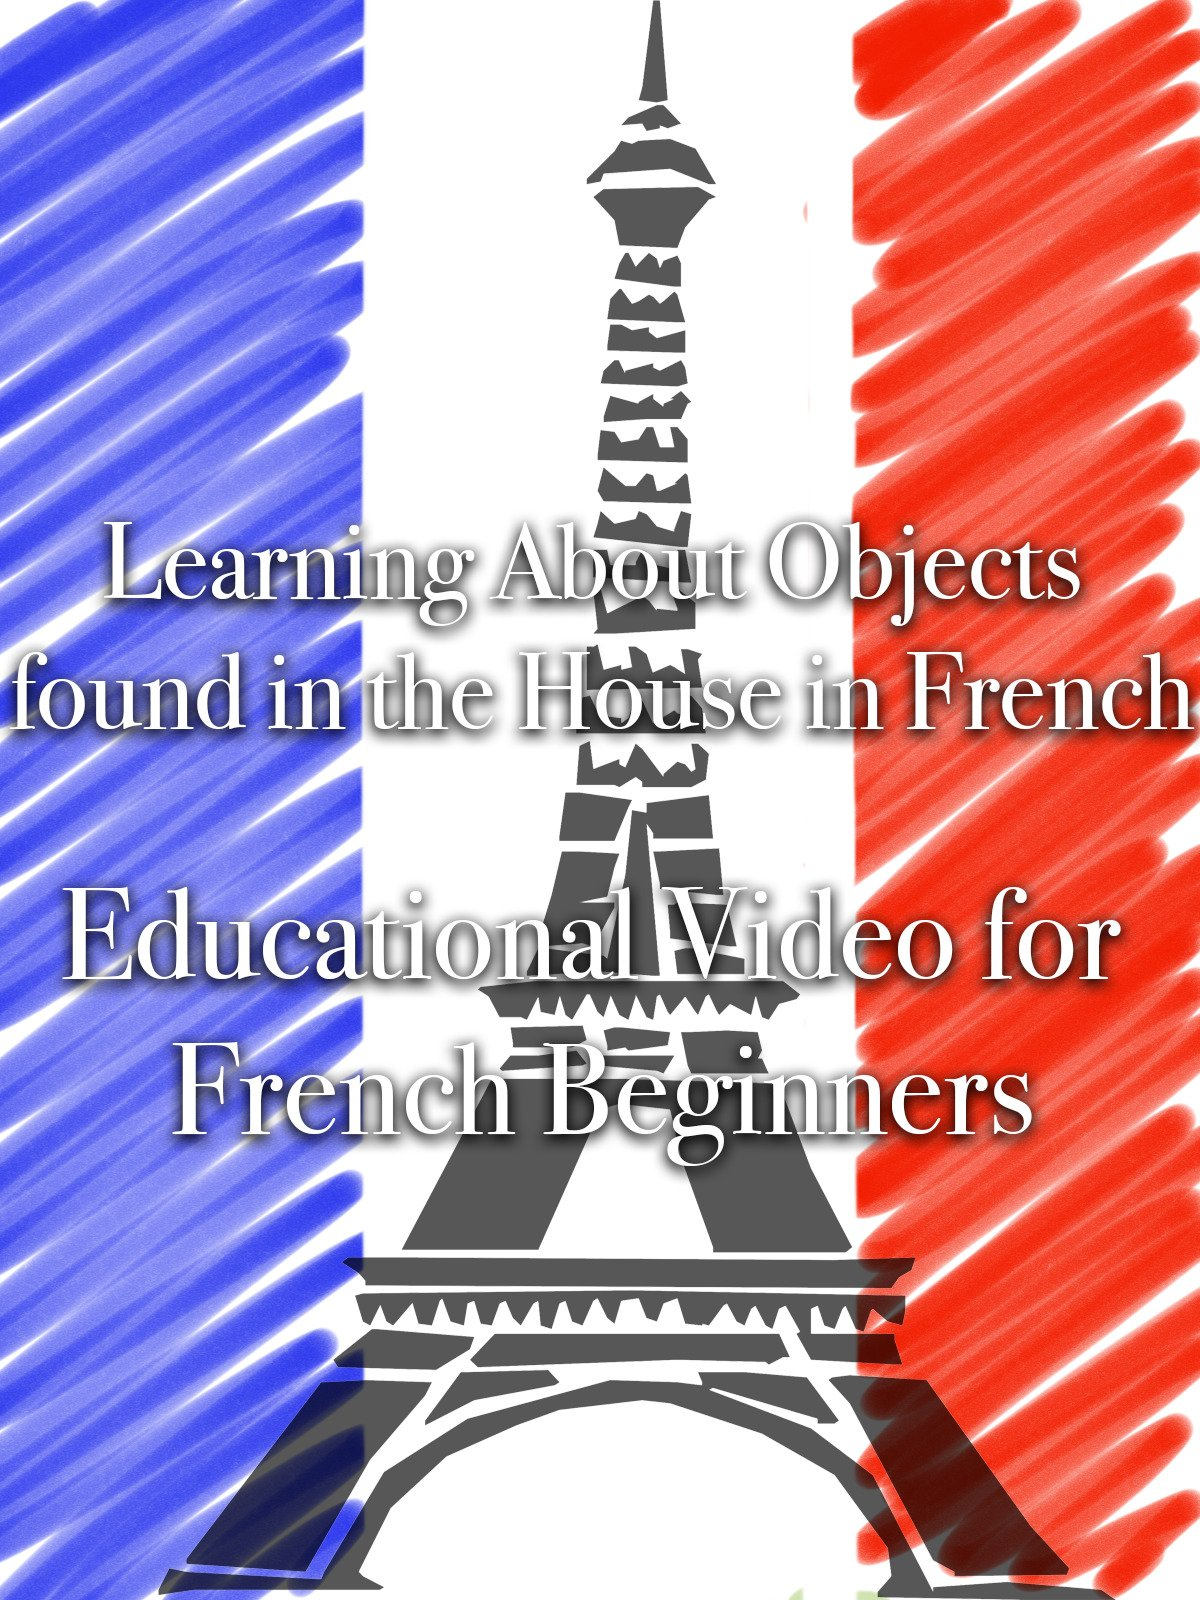 Learning About Objects found in the House in French Educational Video for French Beginners